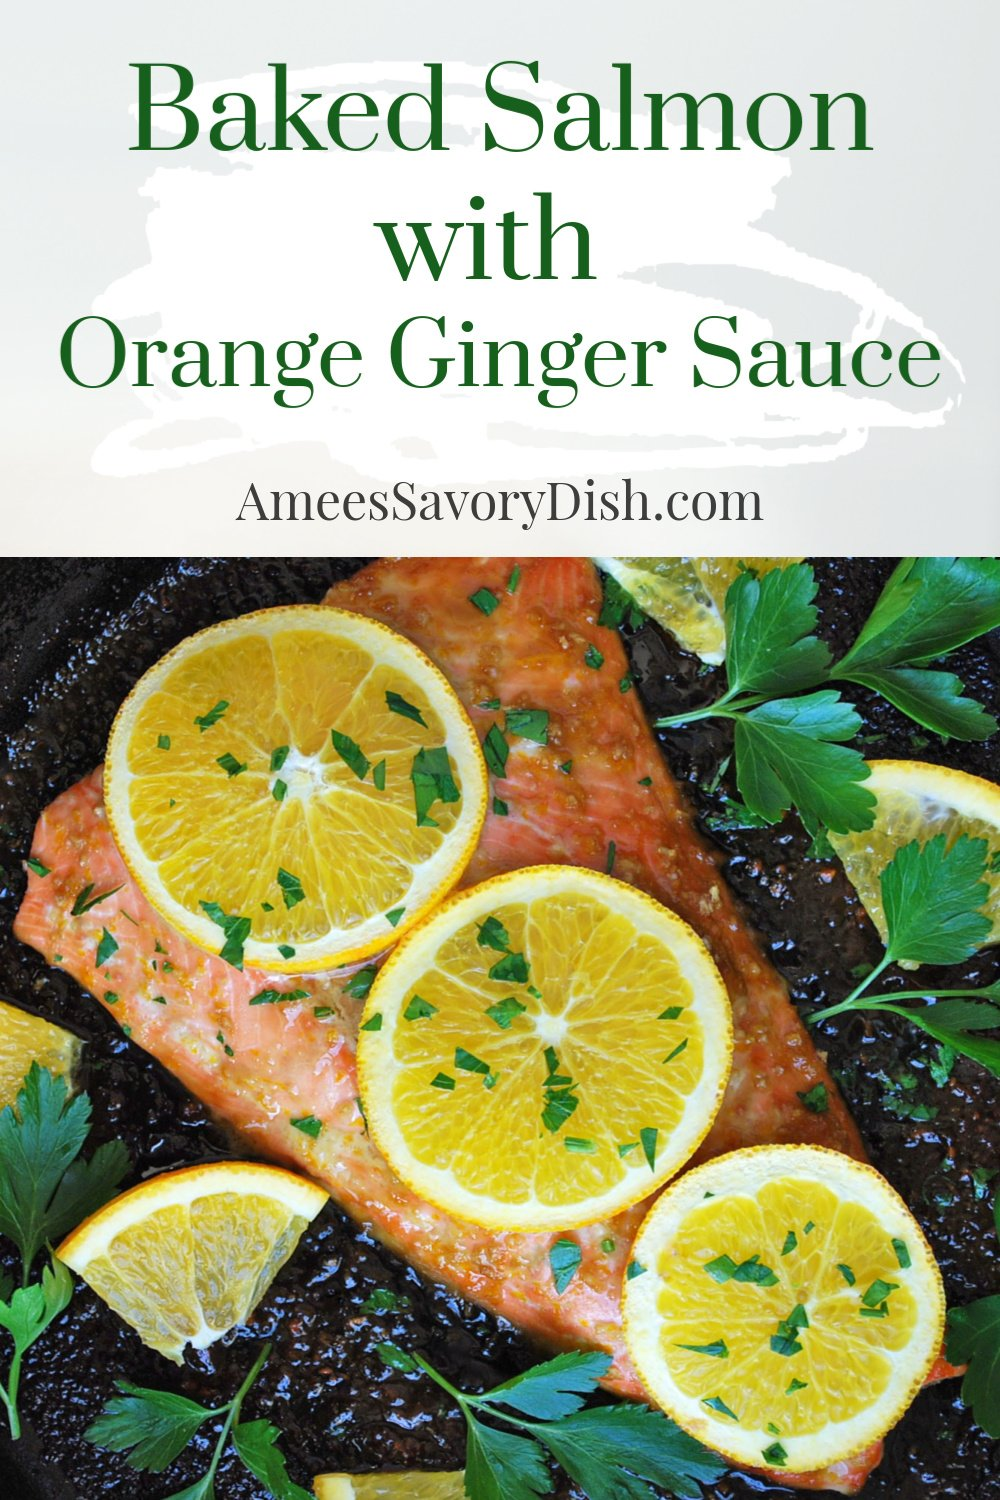 A flavorful recipe for baked salmon made with extra virgin olive oil, soy sauce, honey, orange zest, and fresh ginger root.  It's fast, easy and delicious!   via @Ameessavorydish